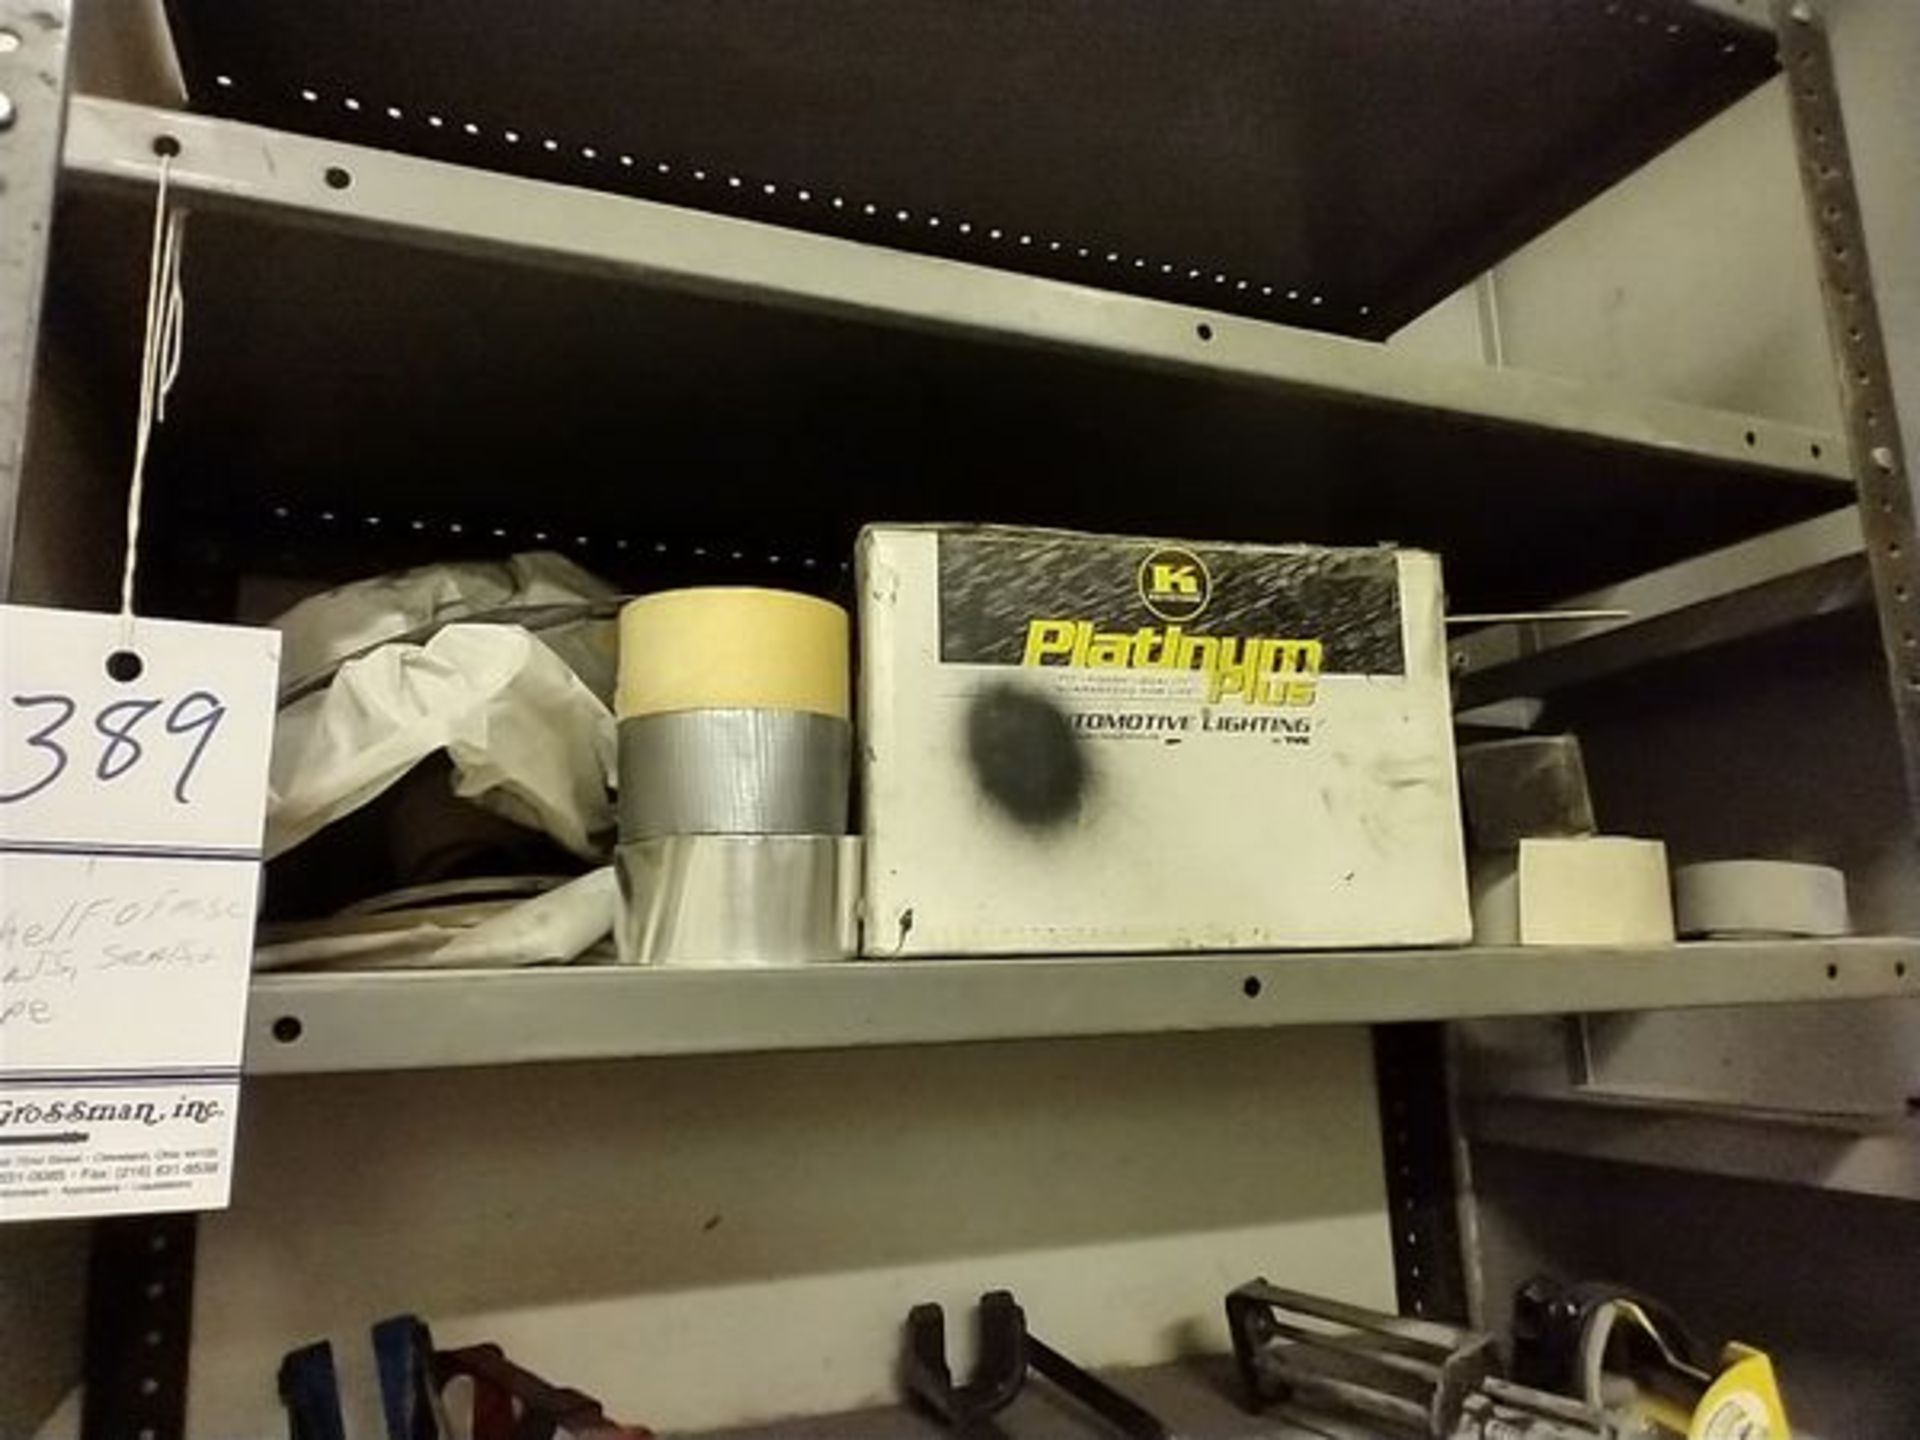 LOT OF PARTS, SEALS, TAPE AND MISC ON SHELF